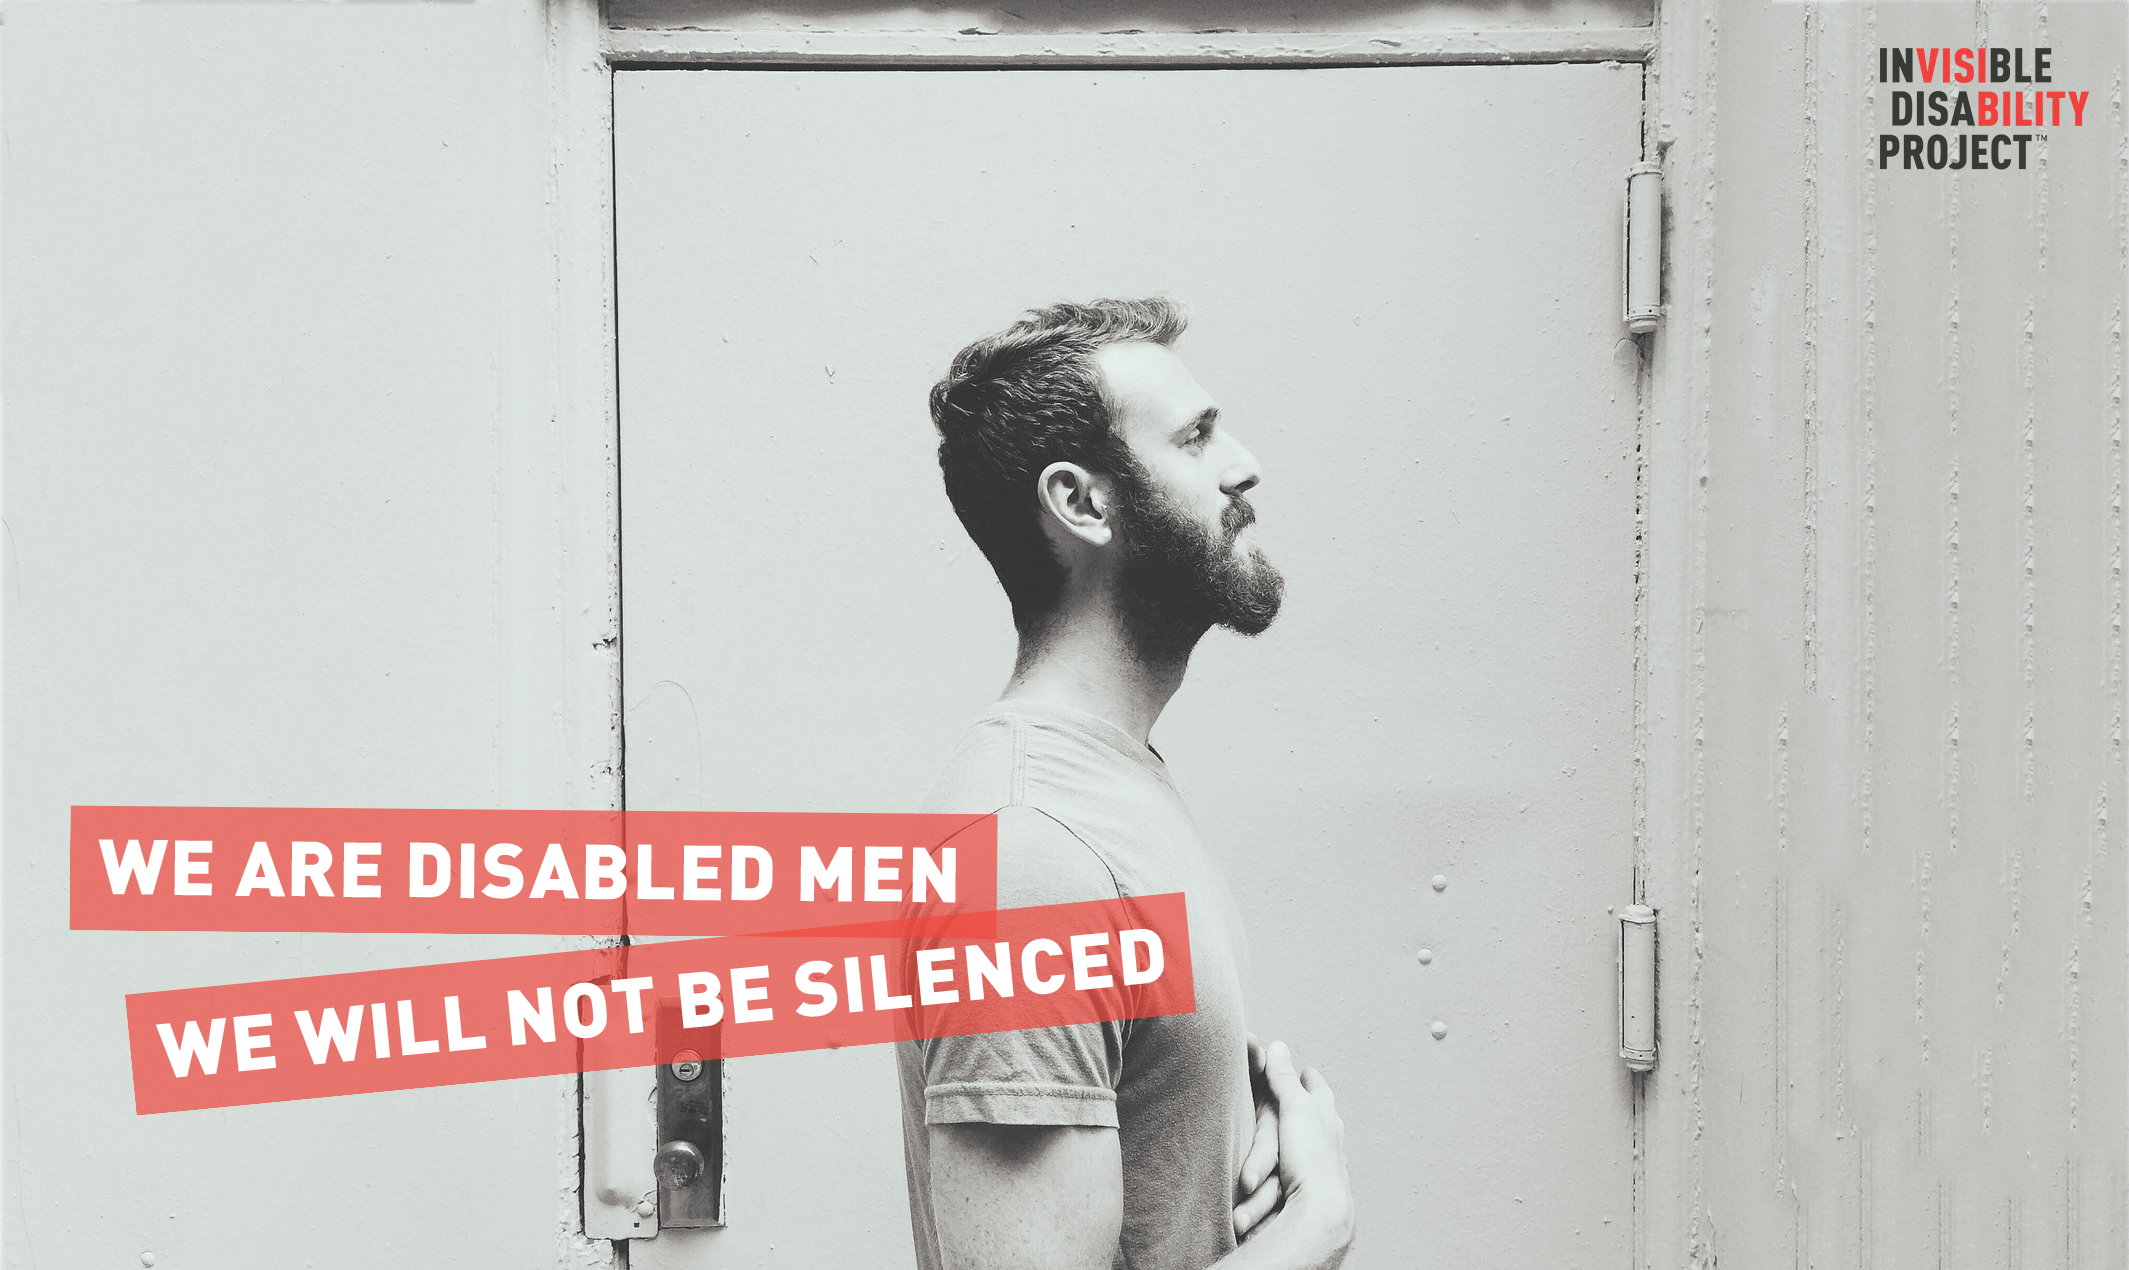 We are disabled men. We will not be silenced.